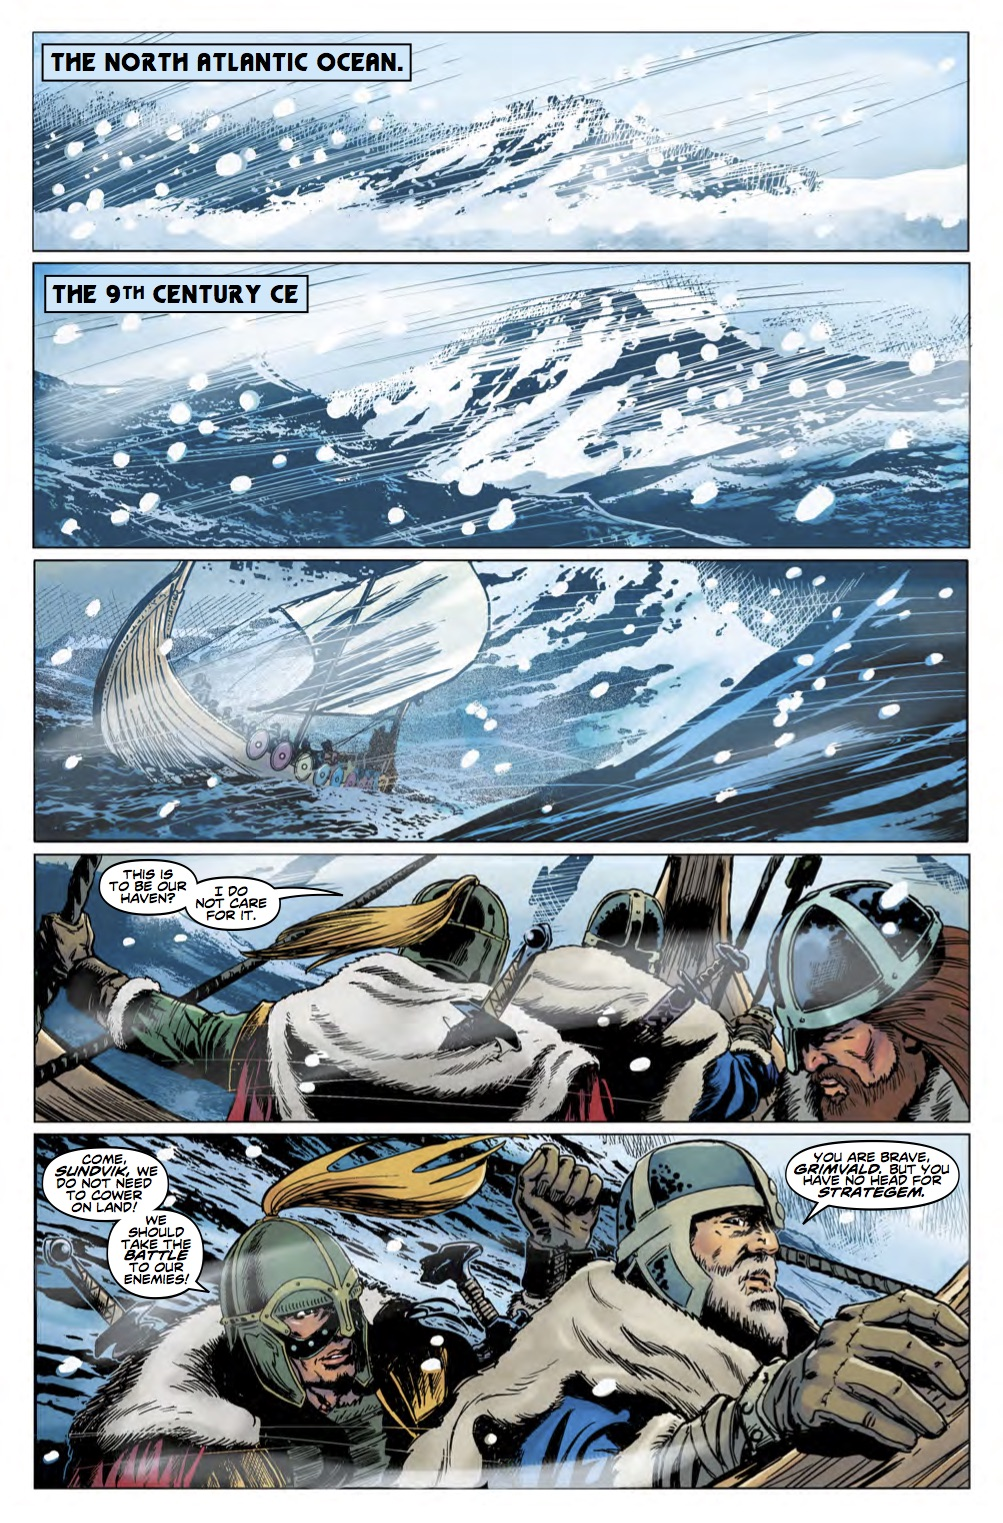 Doctor Who 12th Year Three #5 Page 1 (Credit: Titan)